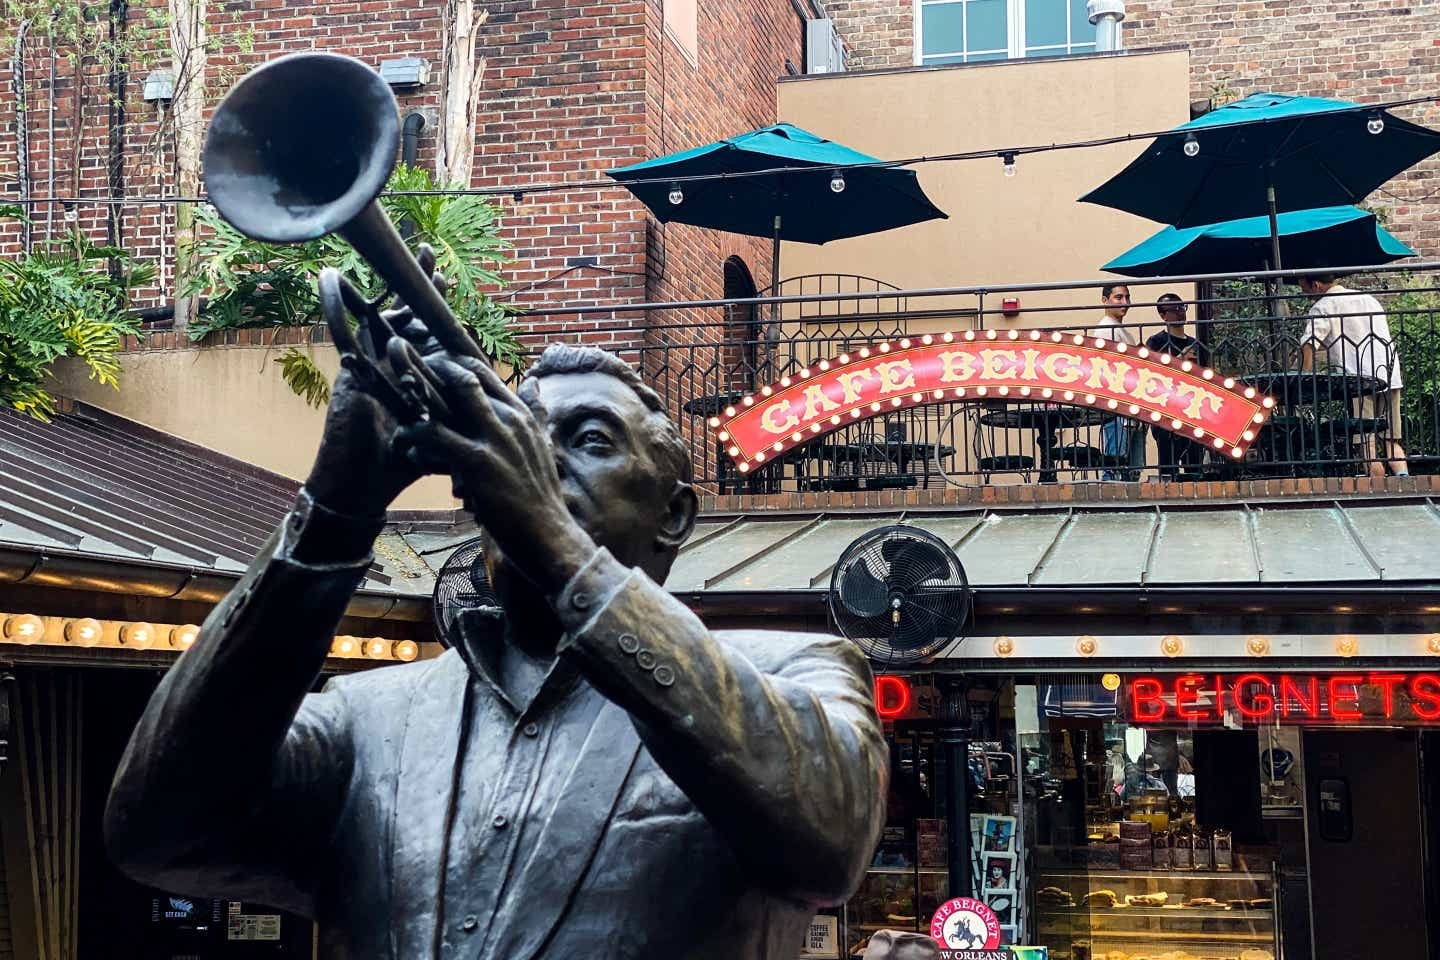 The exterior of Cafe Beignet sign and a bronze statue of a jazz performer.